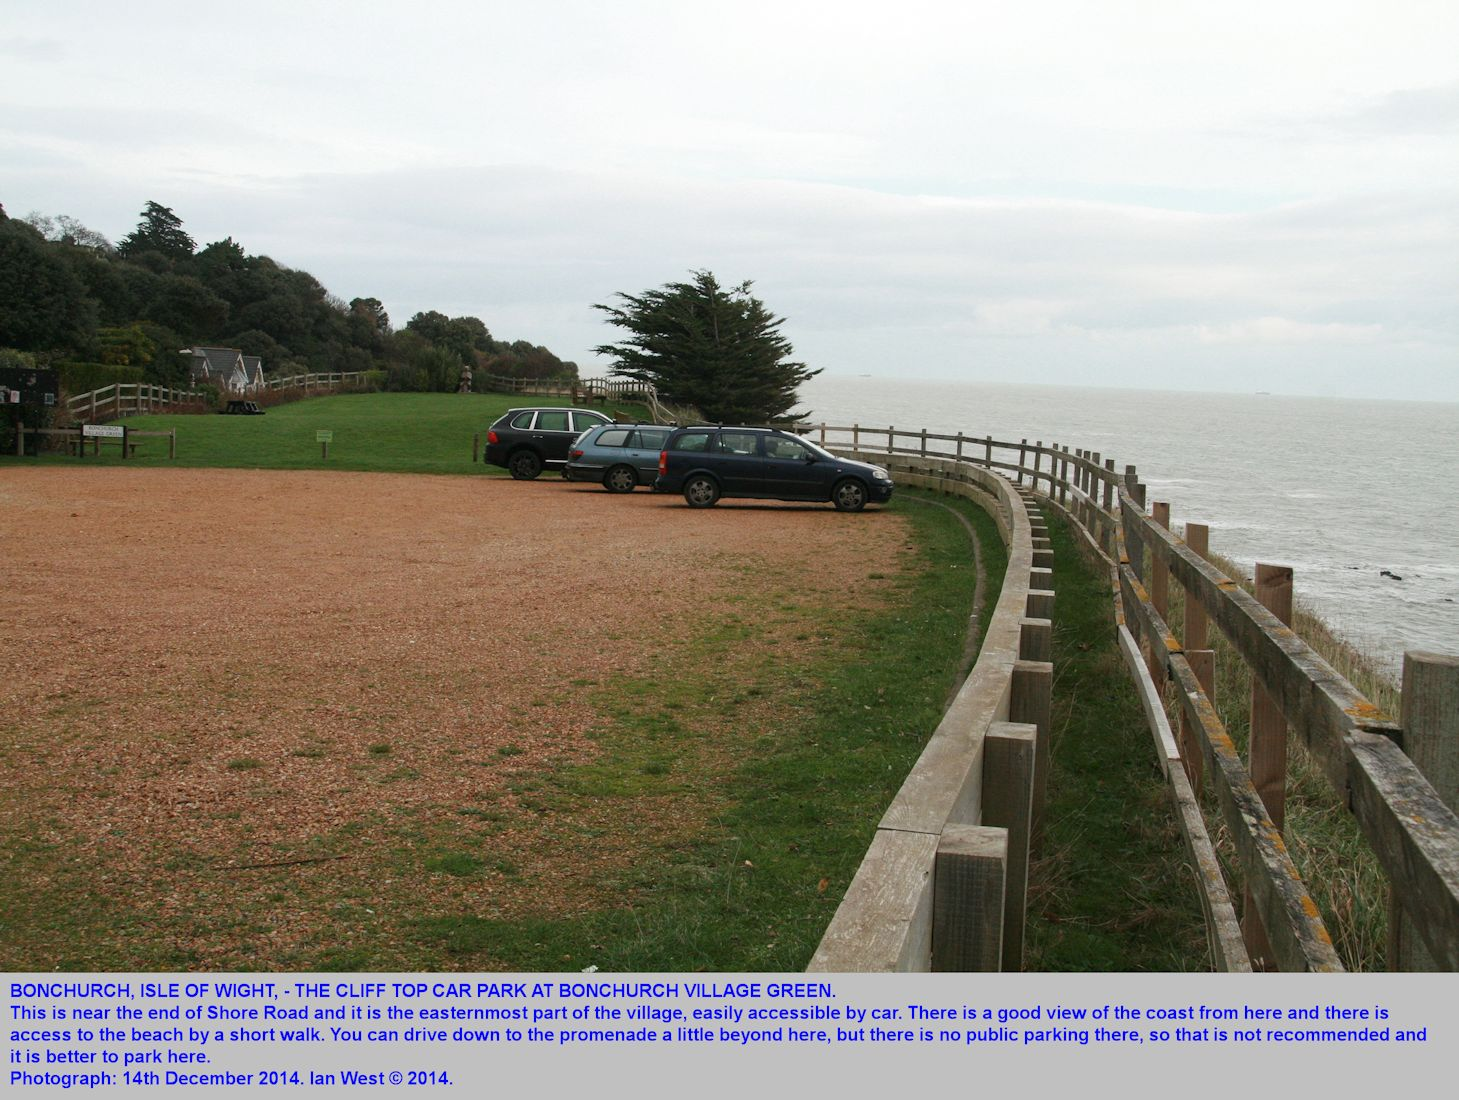 Bonchurch, Isle of Wight, the Village Green  carpark on the cliff top, approached from Shore Road, Ian West, 14th December 2014